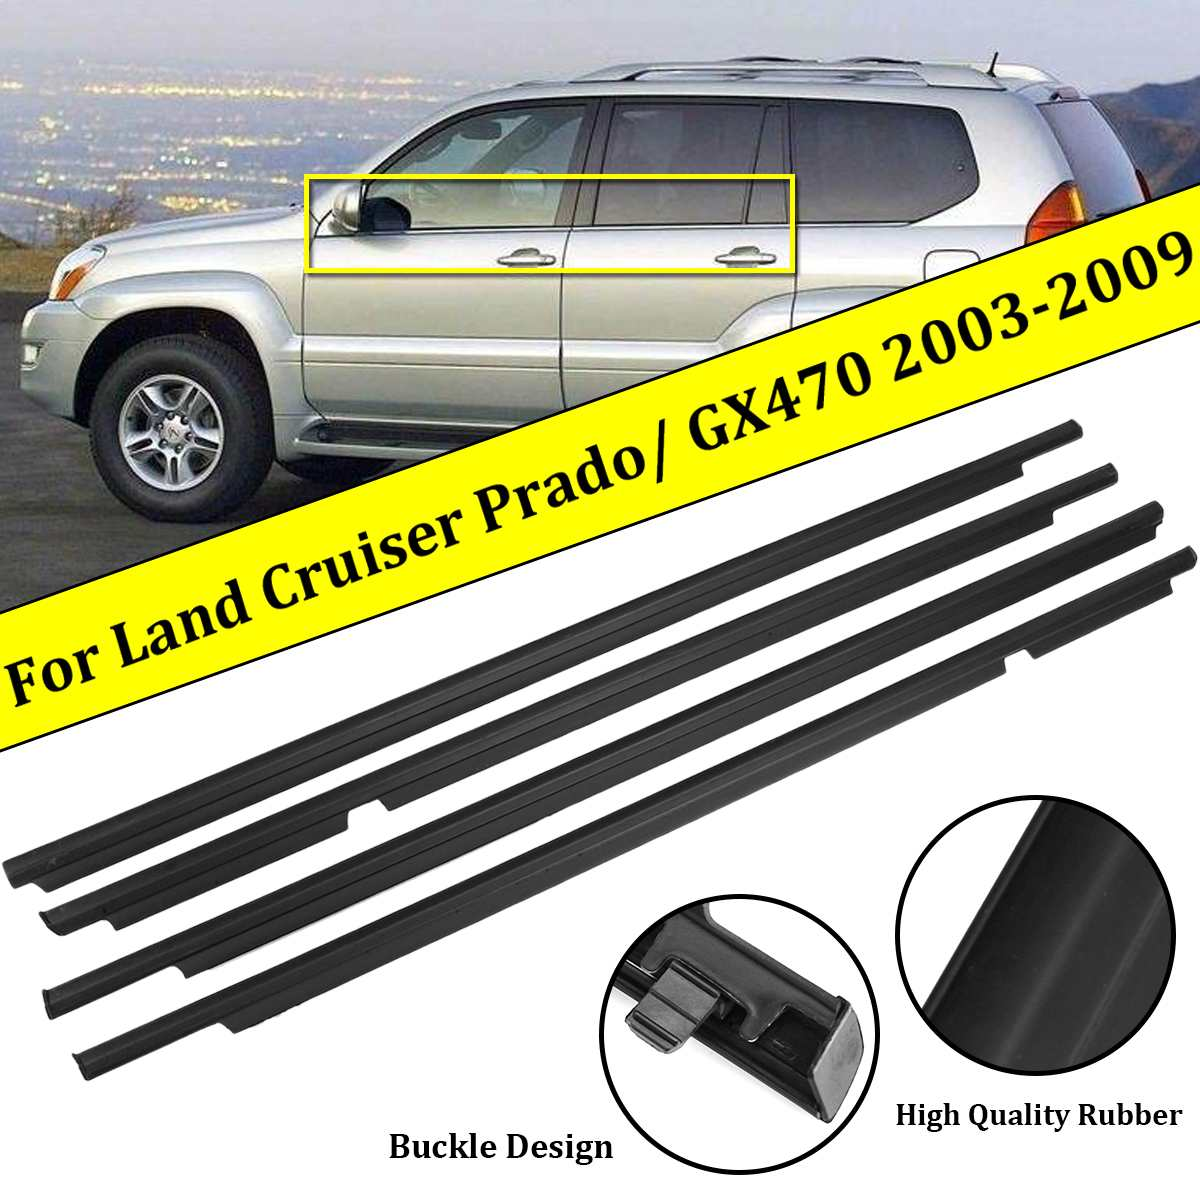 4Pcs Weatherstrips Door Belts Seal Weather Strips for <font><b>Toyota</b></font> Land Cruiser 120 Prado 2003-2009 For Lexus GX470 2003-2009 image